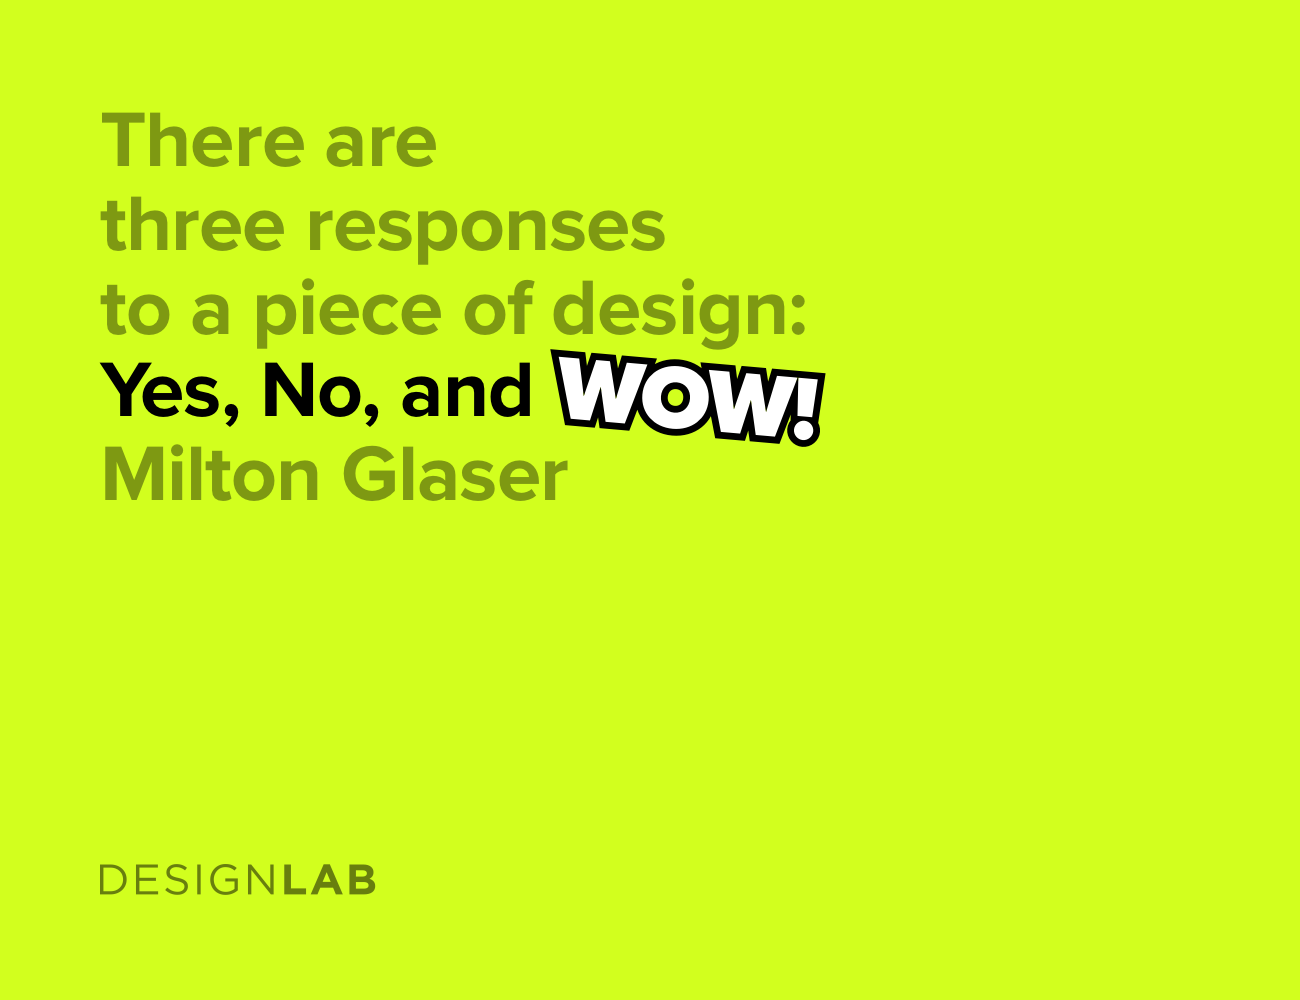 There are three responses to a piece of design – yes, no, and WOW!. Milton Glaser